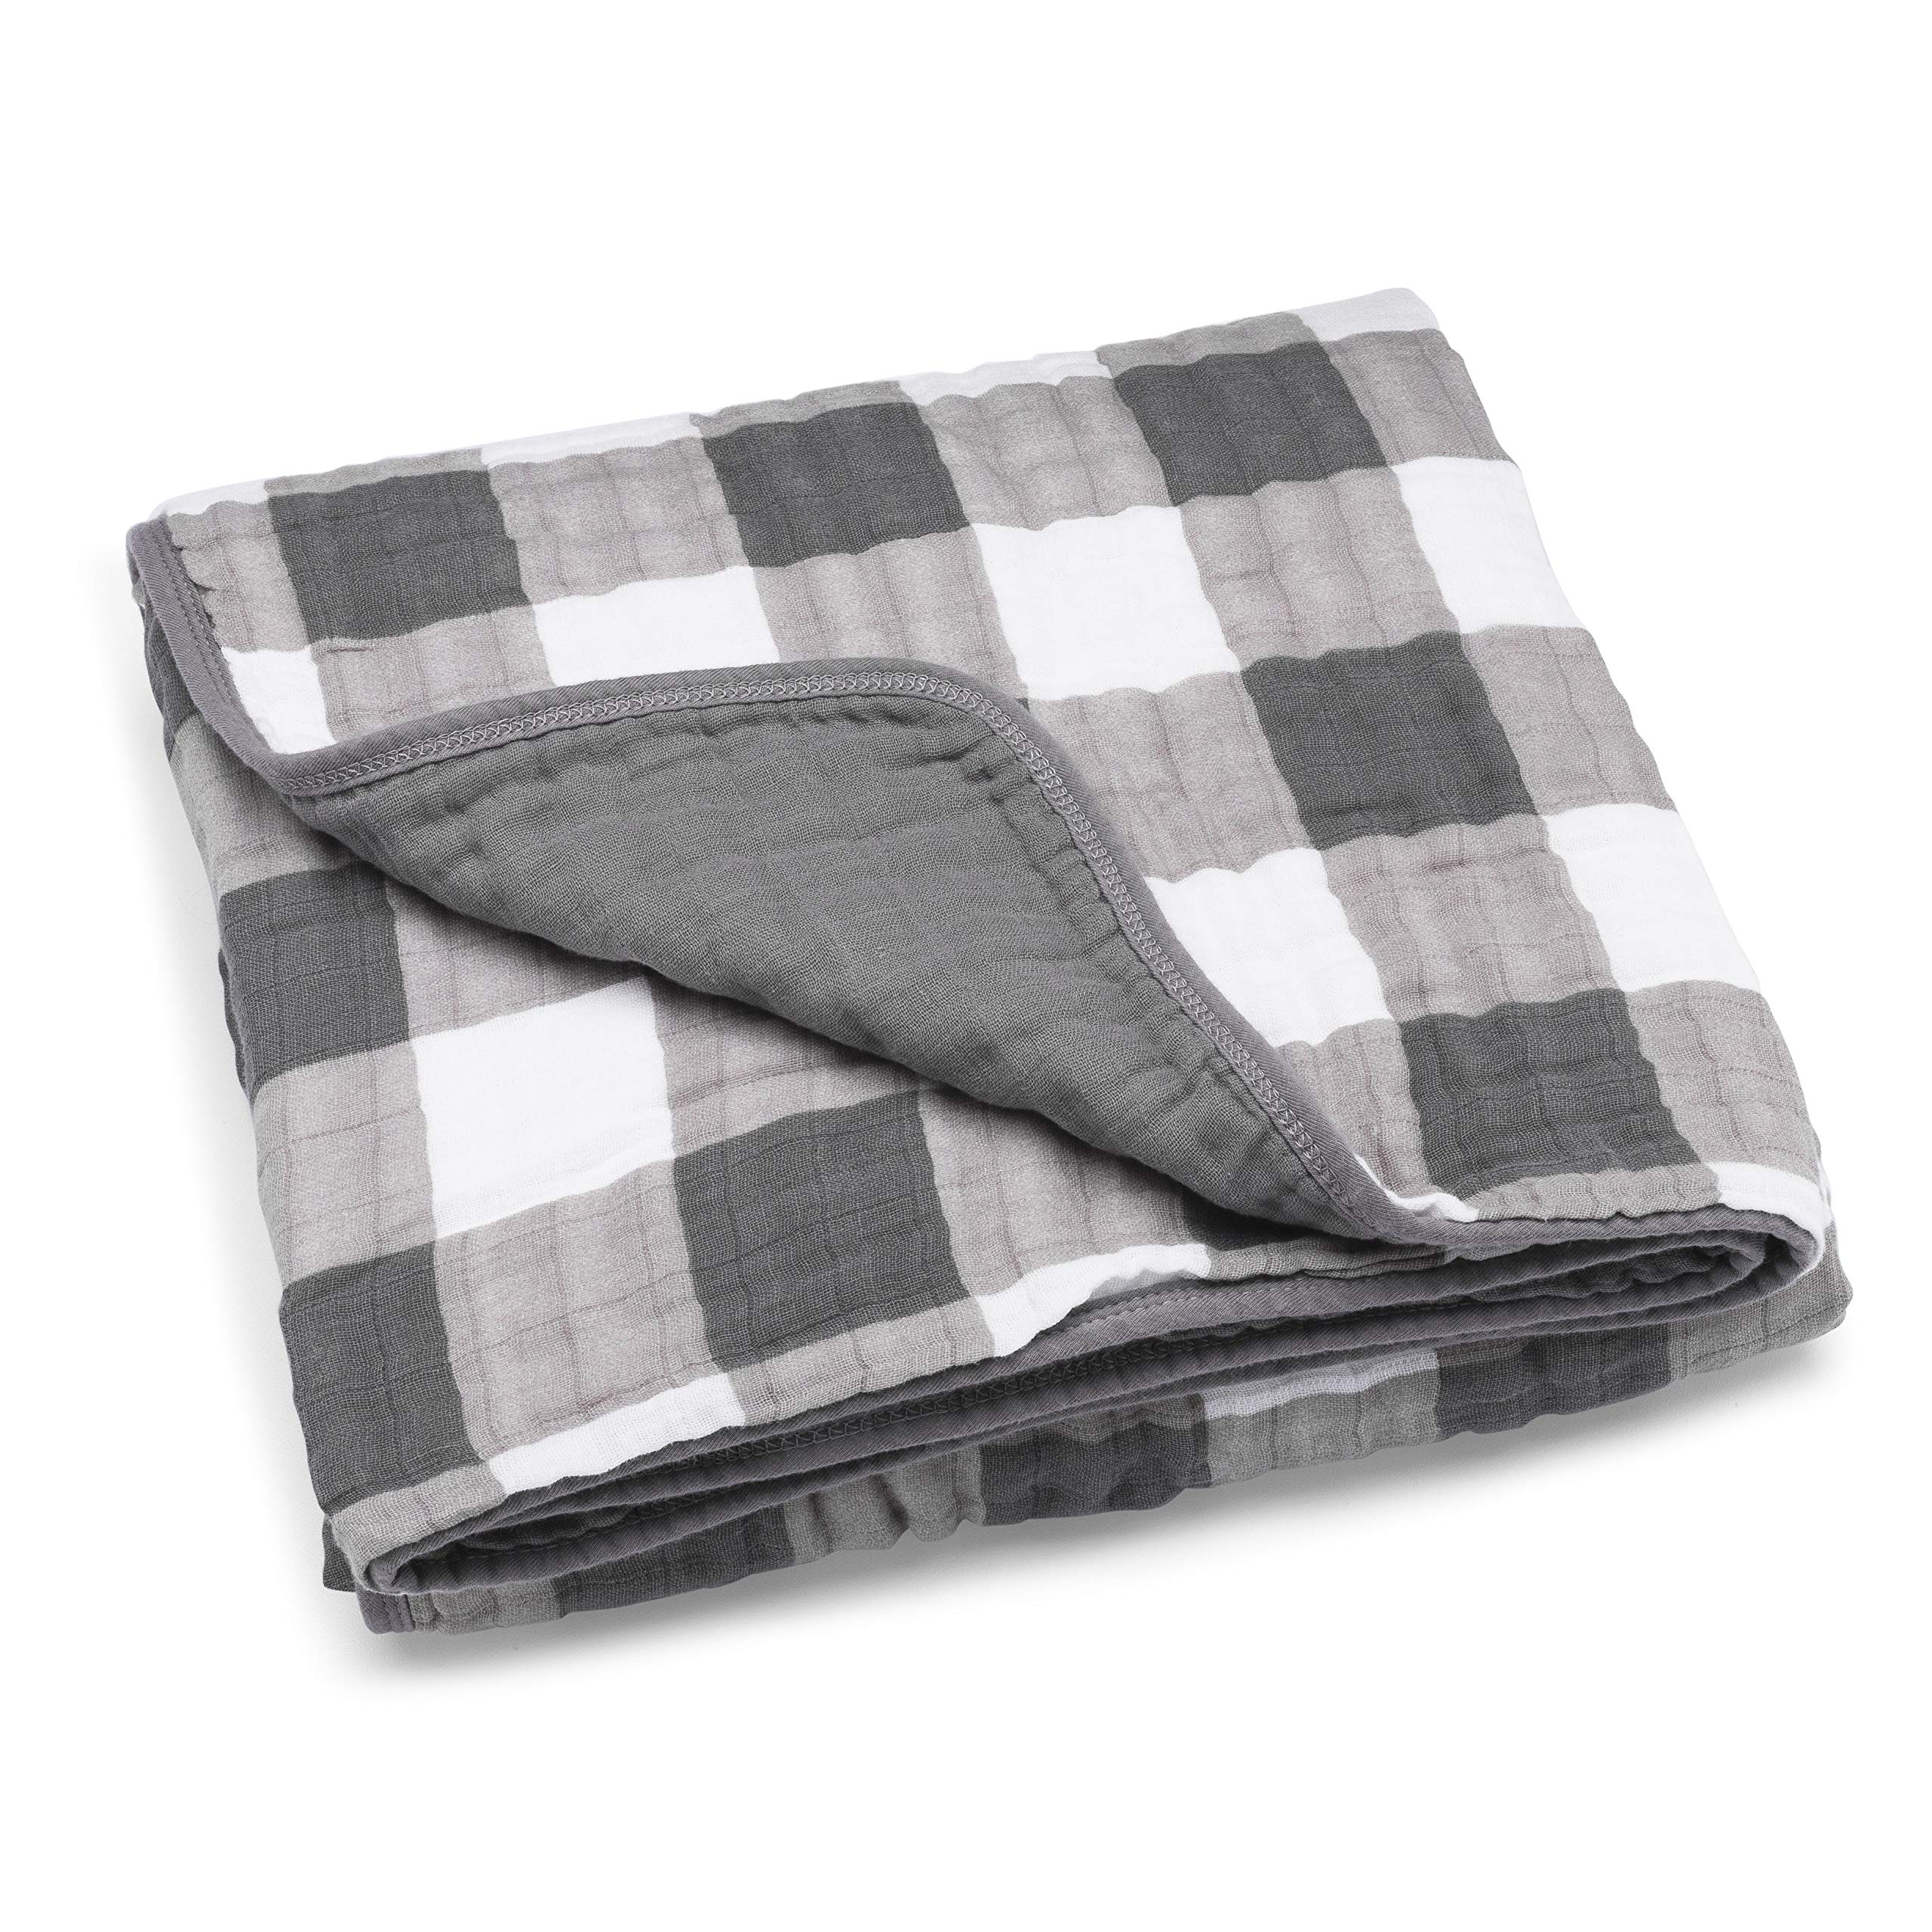 Parker Baby Muslin Blanket - 100% Soft Cotton Baby Quilt and Kids Blanket - Unisex, Gender Neutral -''Gray Buffalo''